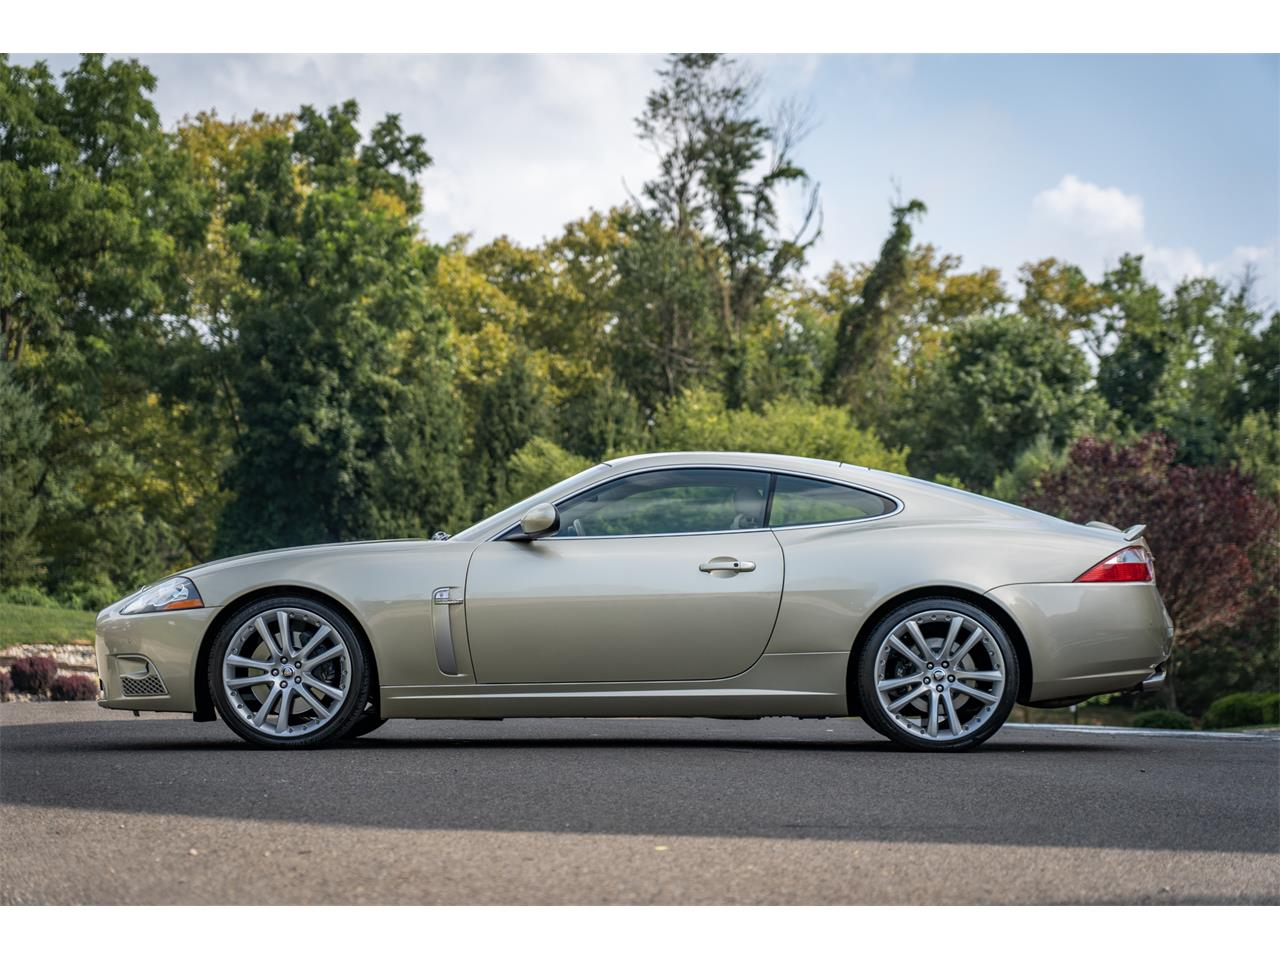 Large Picture of '08 Jaguar XKR located in Doylestown Pennsylvania - QQG3